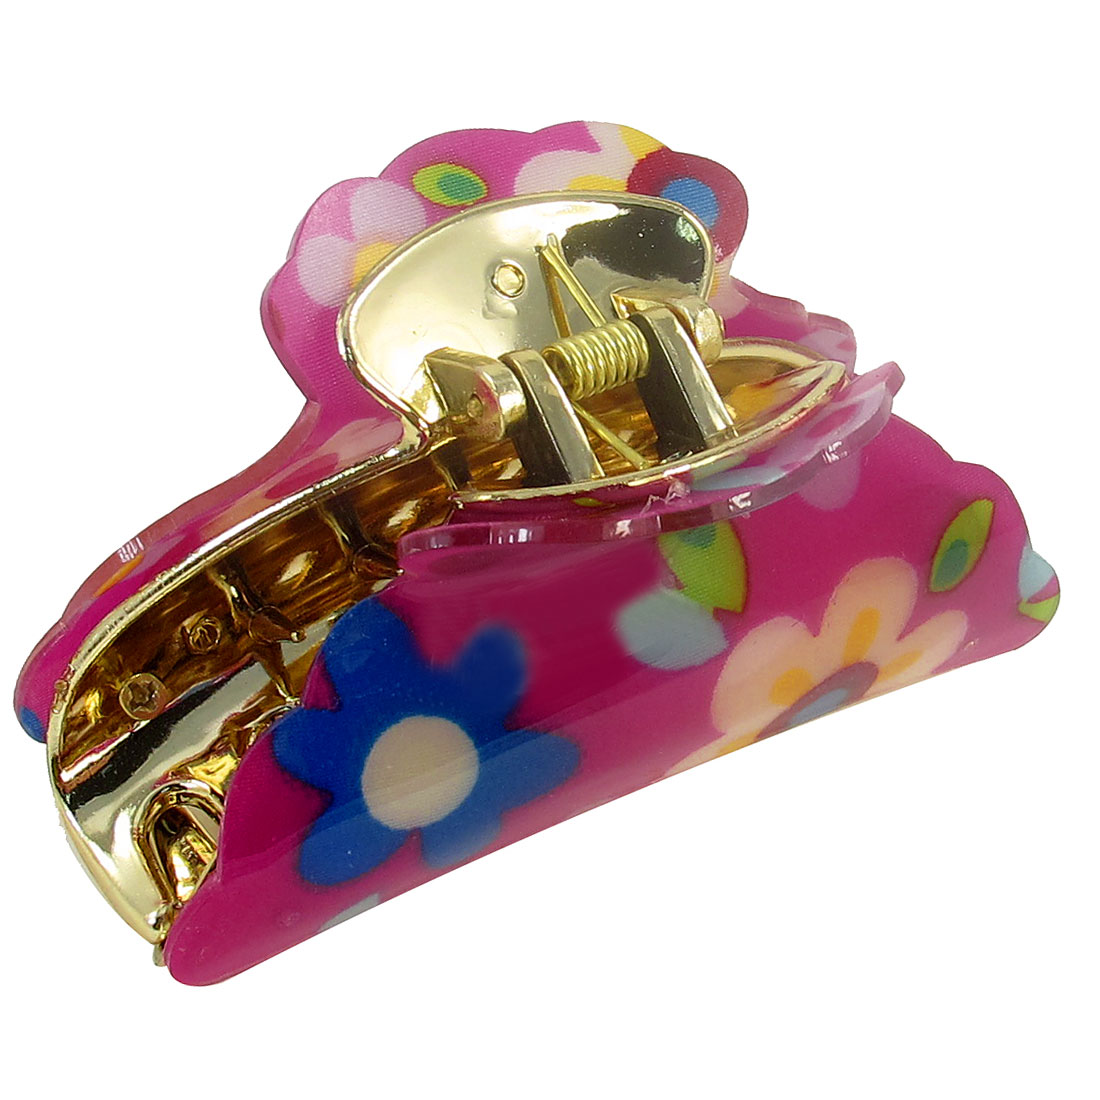 Blue Floral Pattern Press Spring Plastic Hairclip Clamp Hair Claw for Lady